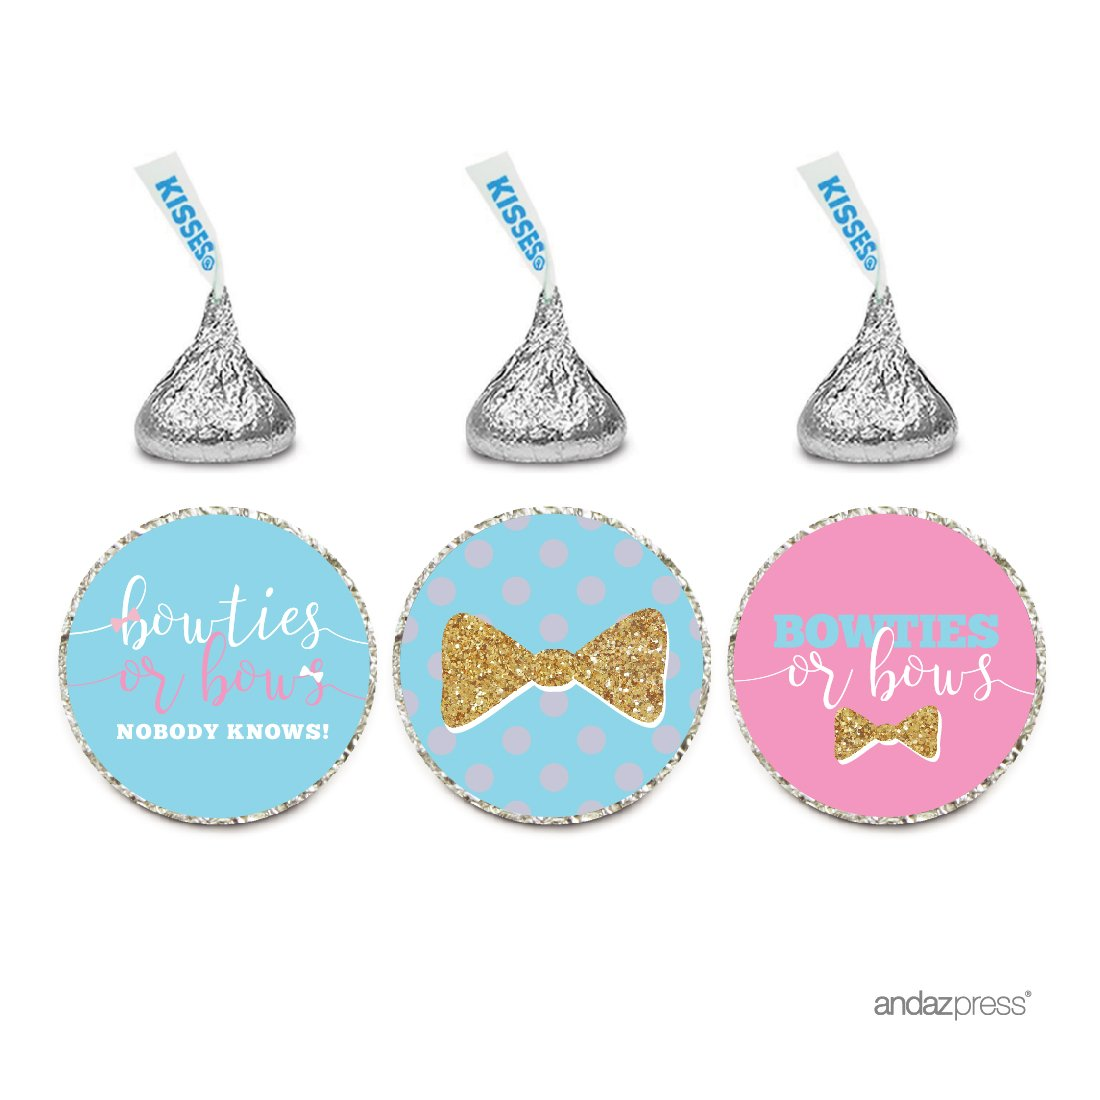 108 GENDER REVEAL BABY SHOWER HERSHEY KISS CANDY STICKERS Bow or Bowtie